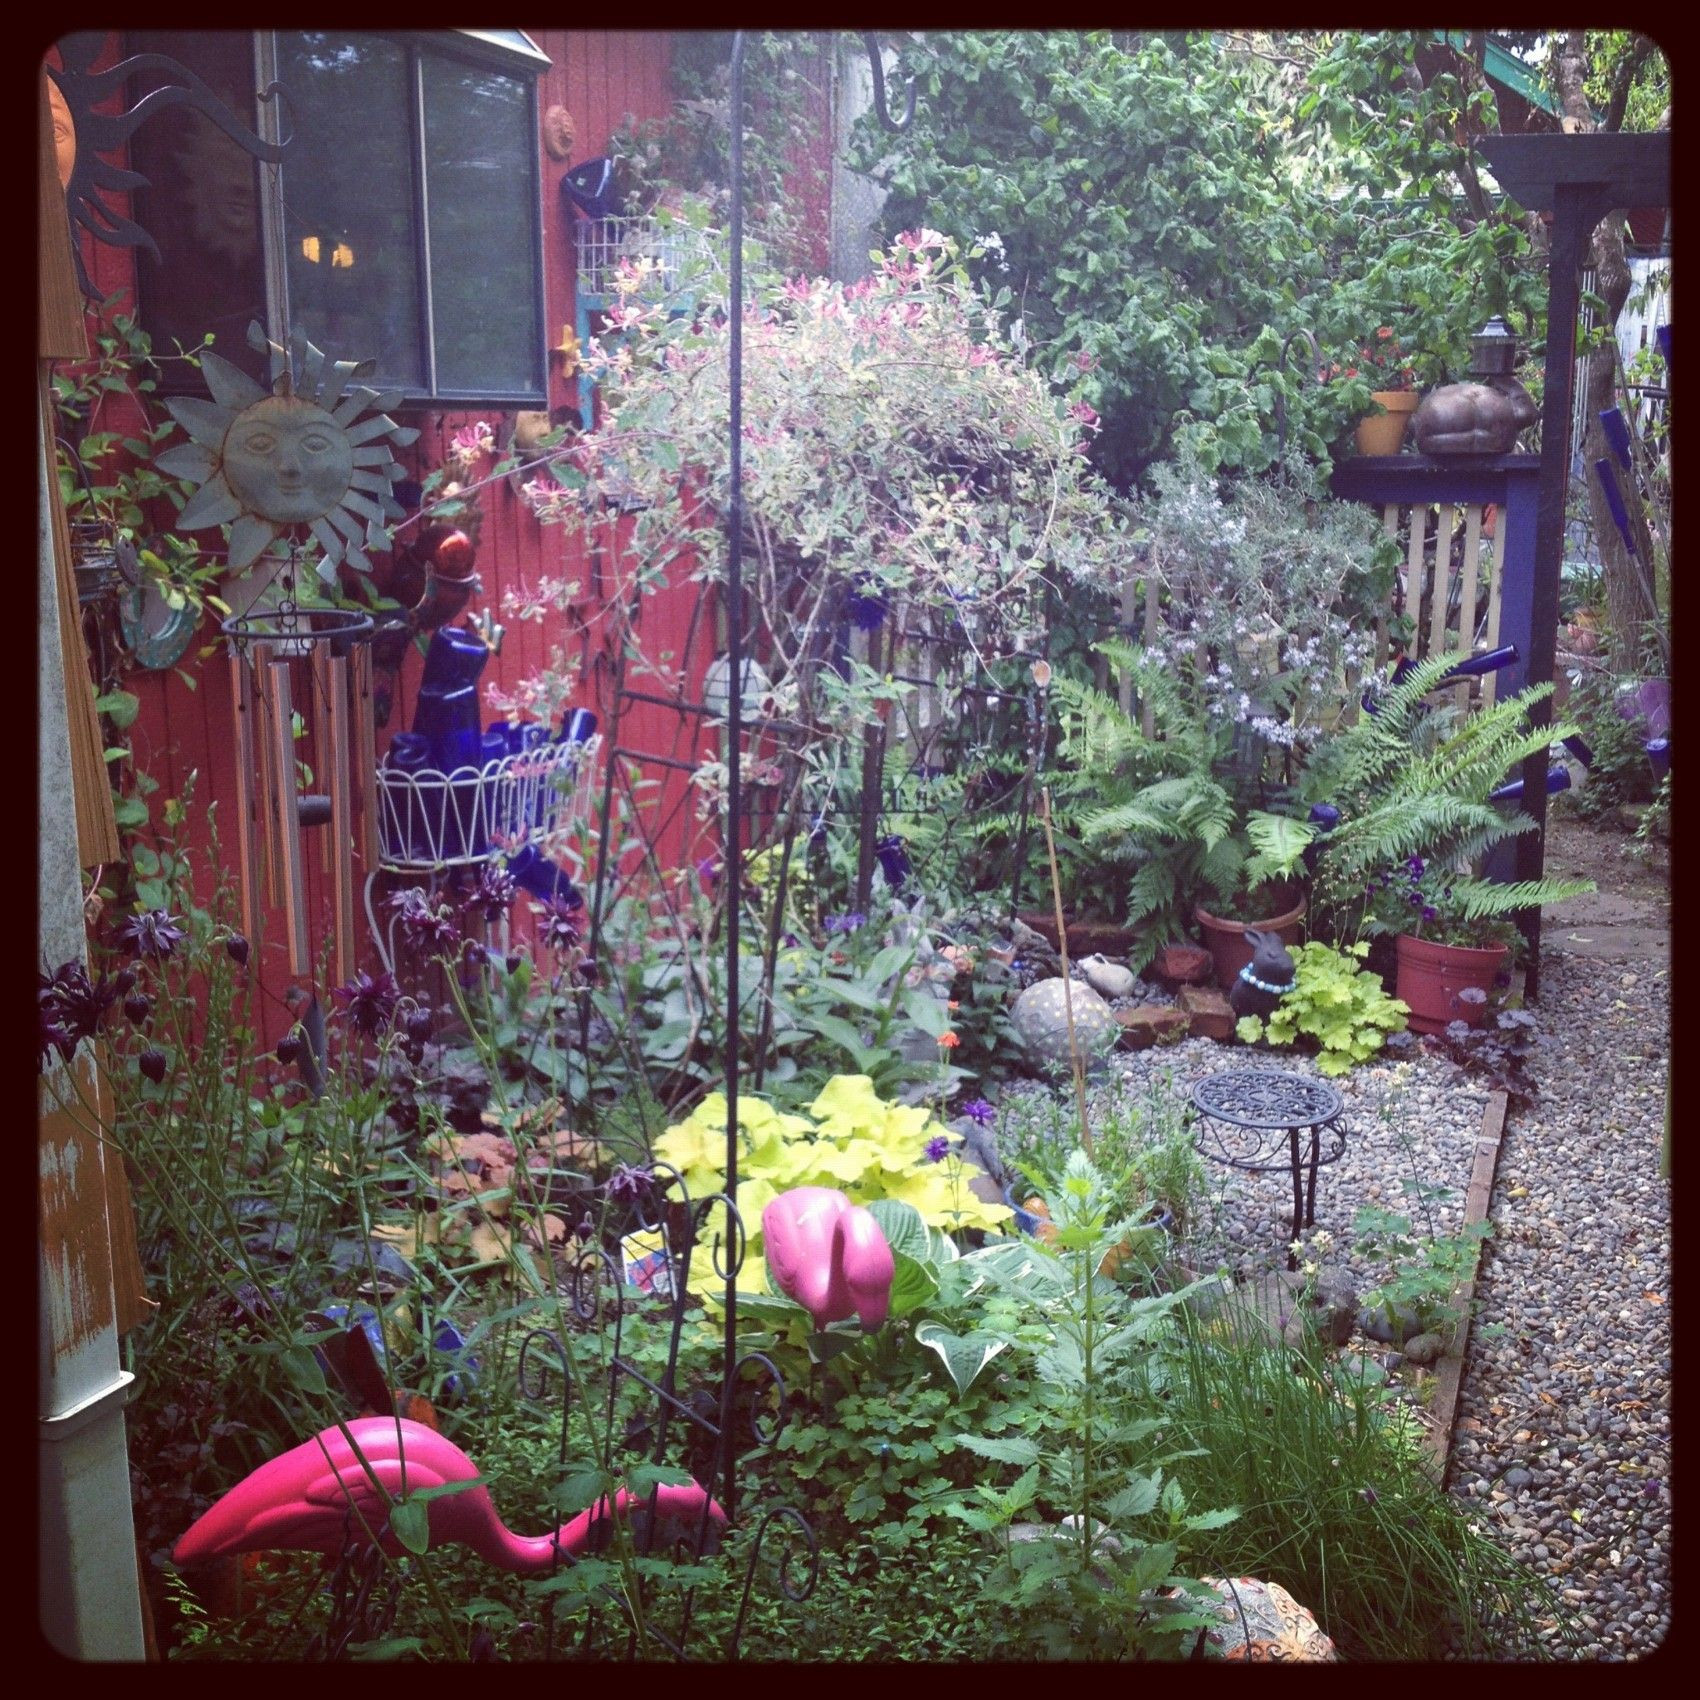 My private garden has a bench and rabbits and flamingoes and bottles and bird houses and a sweet fountain the chickadees love.